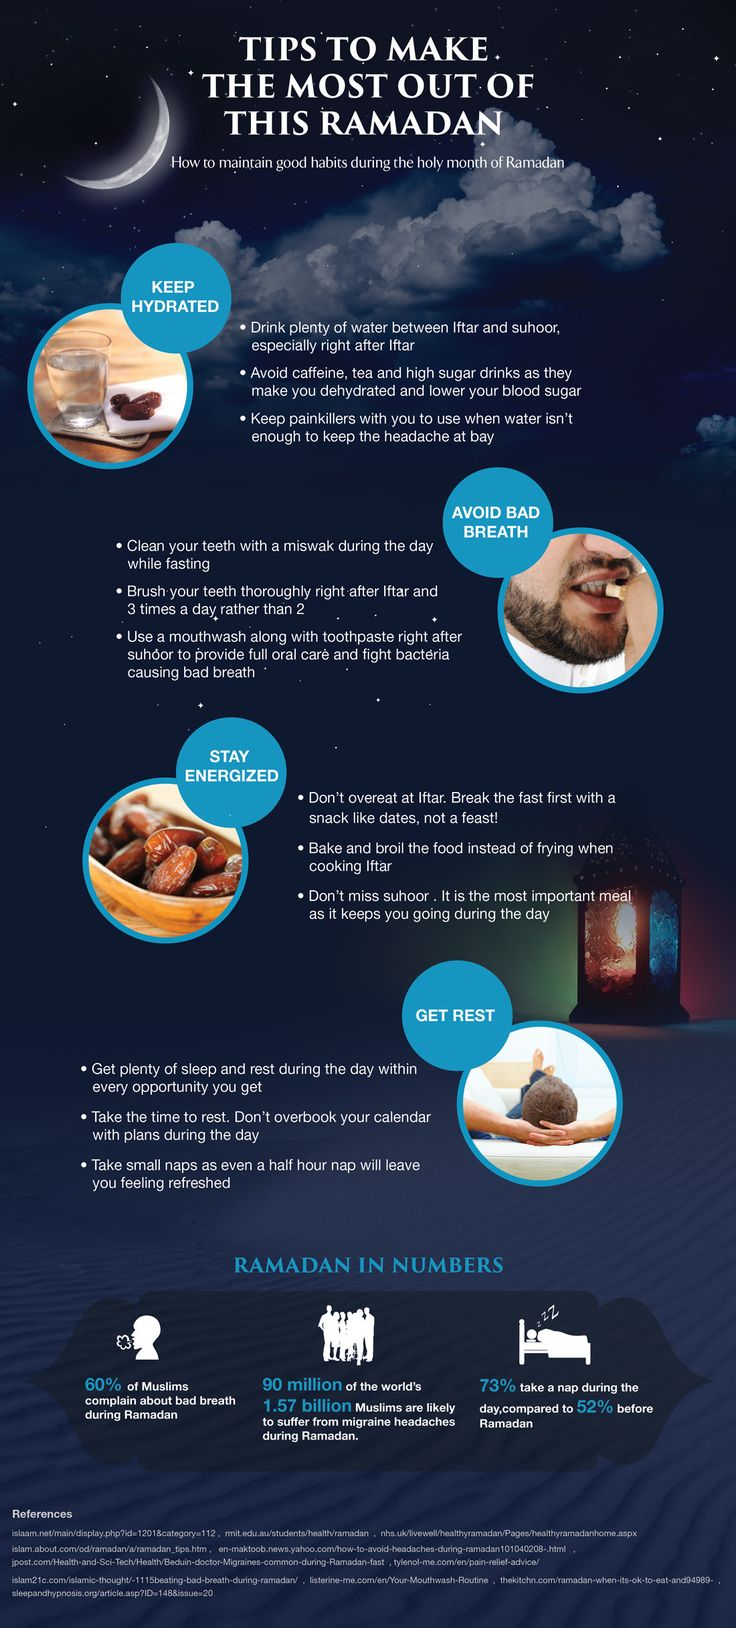 Radha Krishna Ji Taglist Page 1 - Tips to make the most out of this ramadan infographic